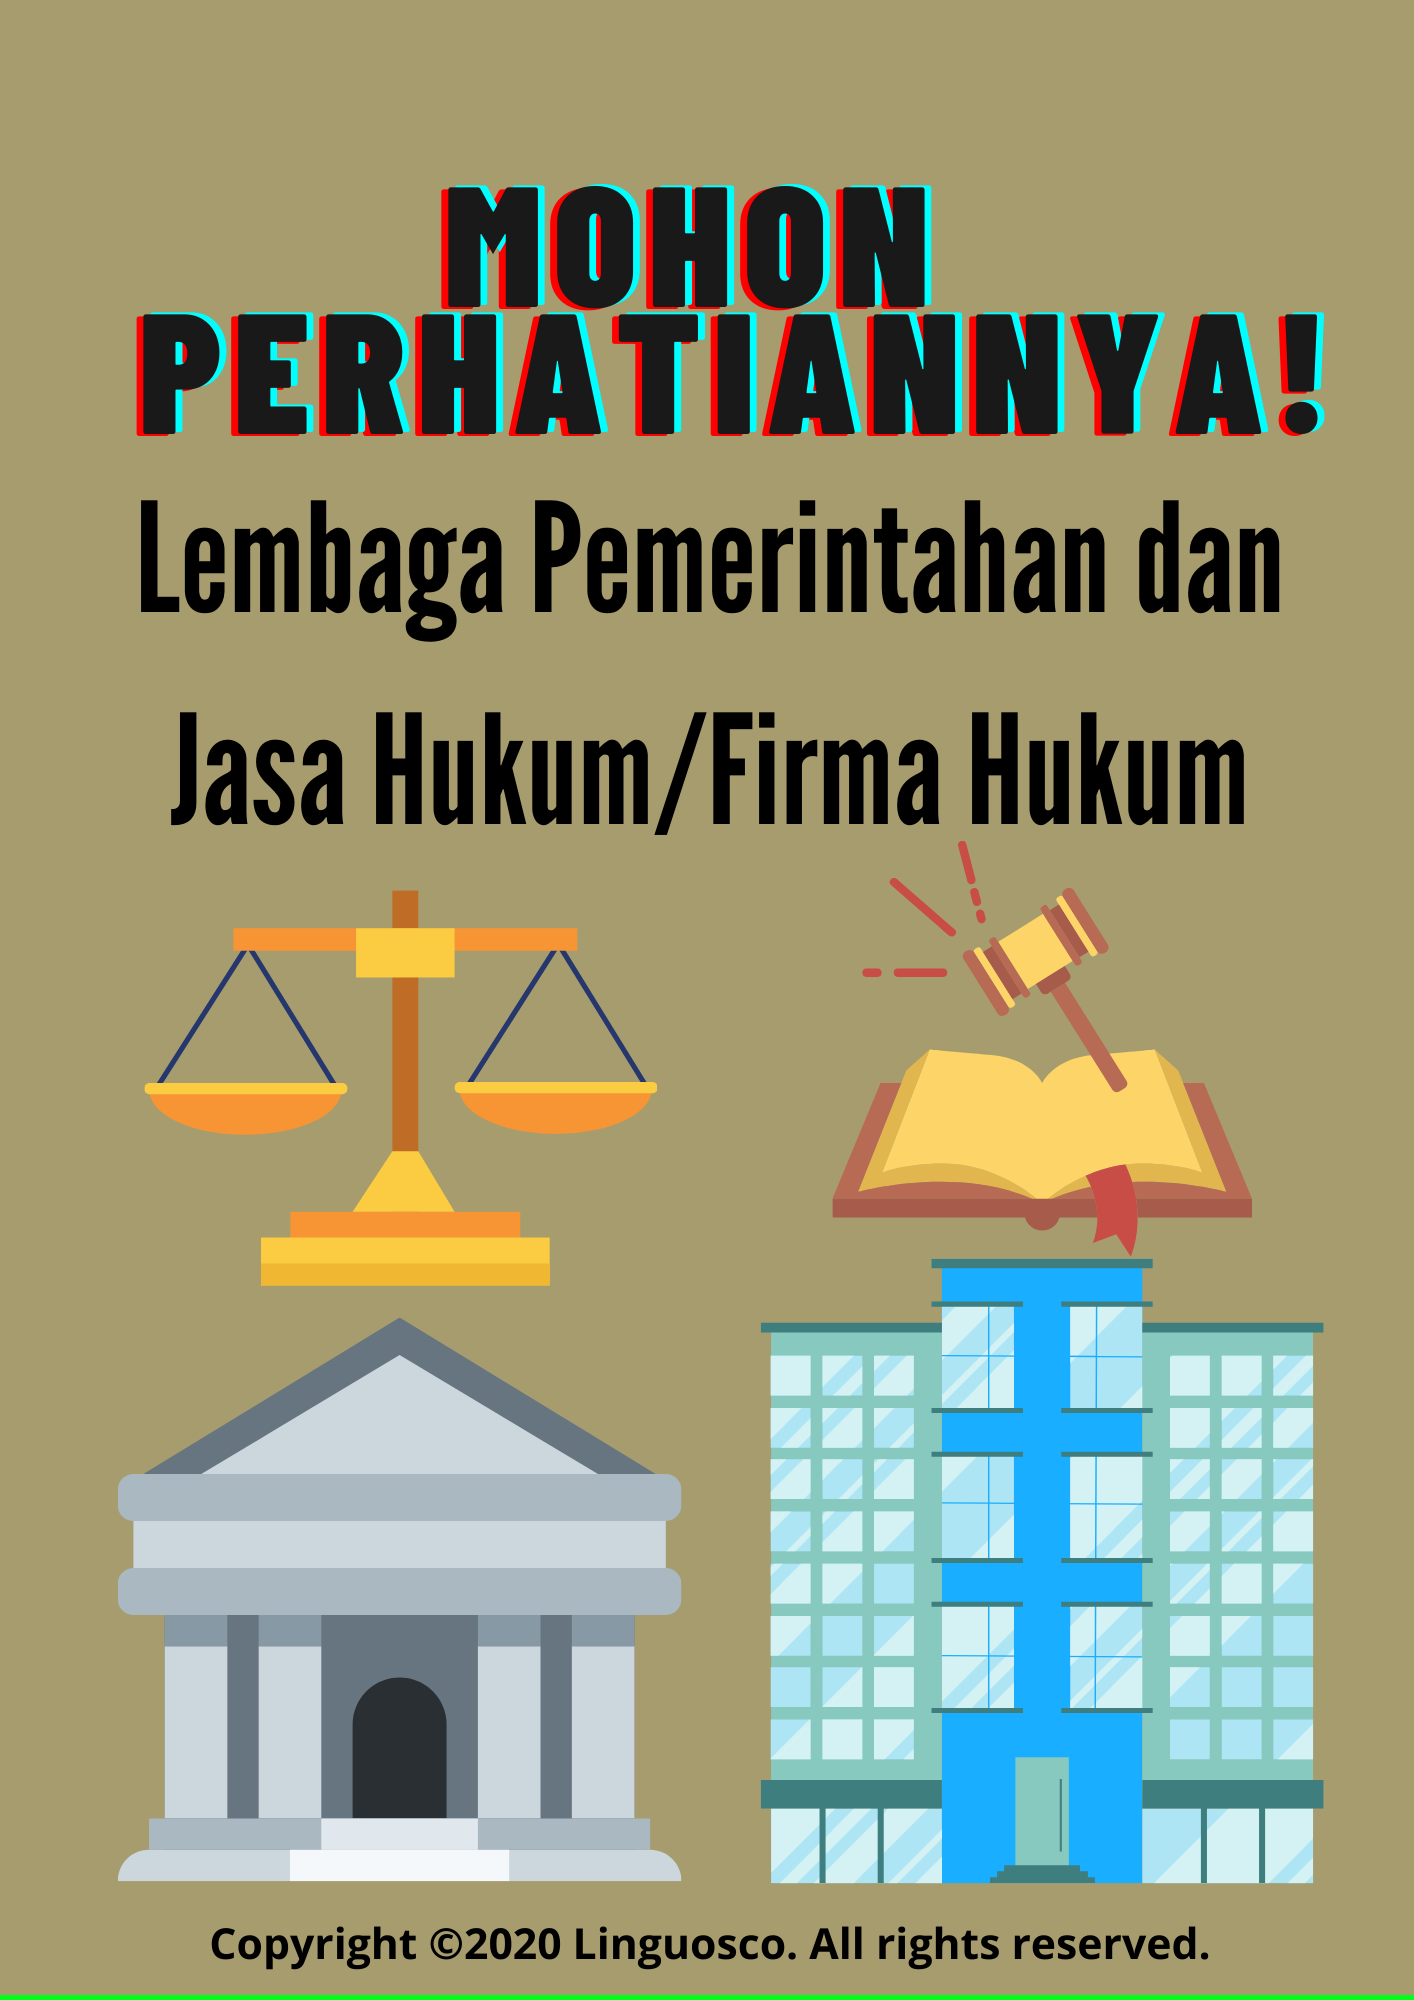 Personalized Ads - Law Firms and Government Institutions